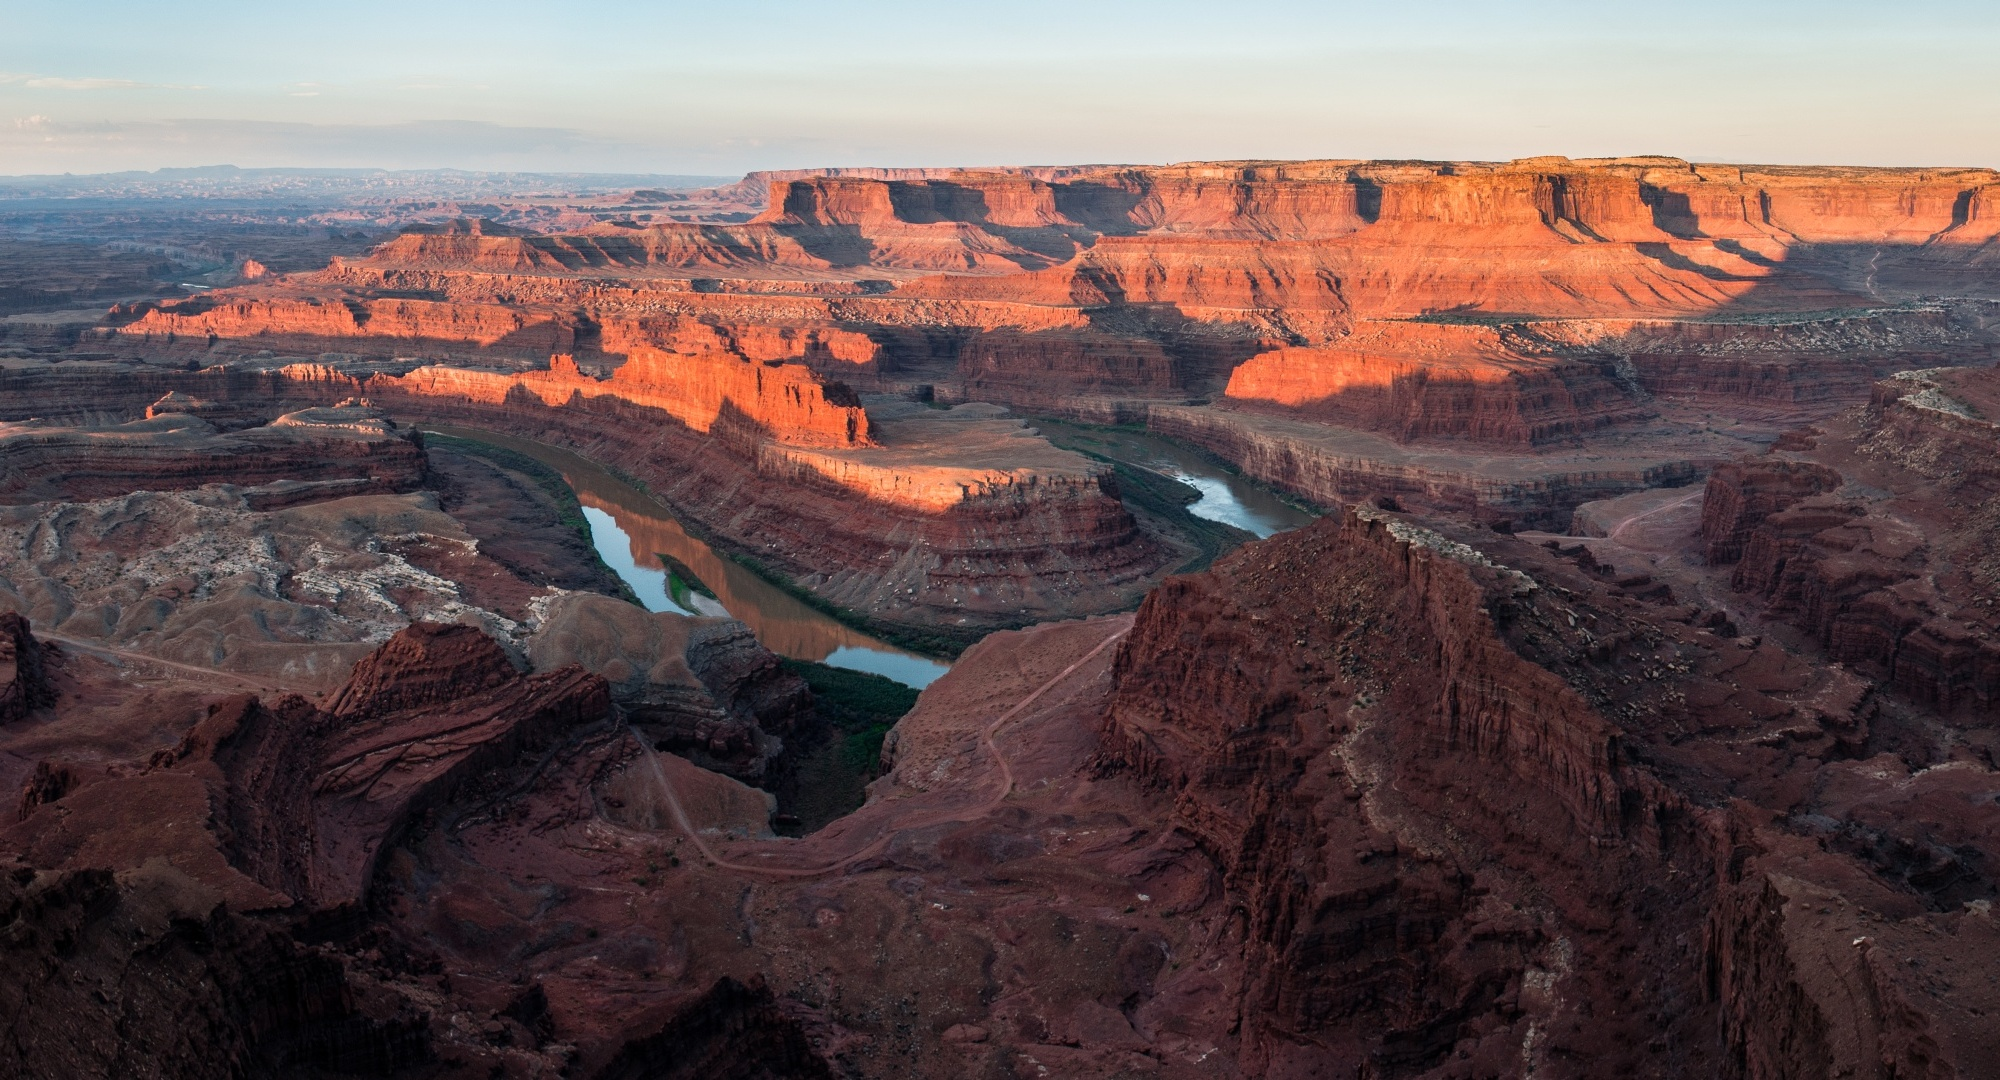 Dead Horse Point - Few mins after the sunrise